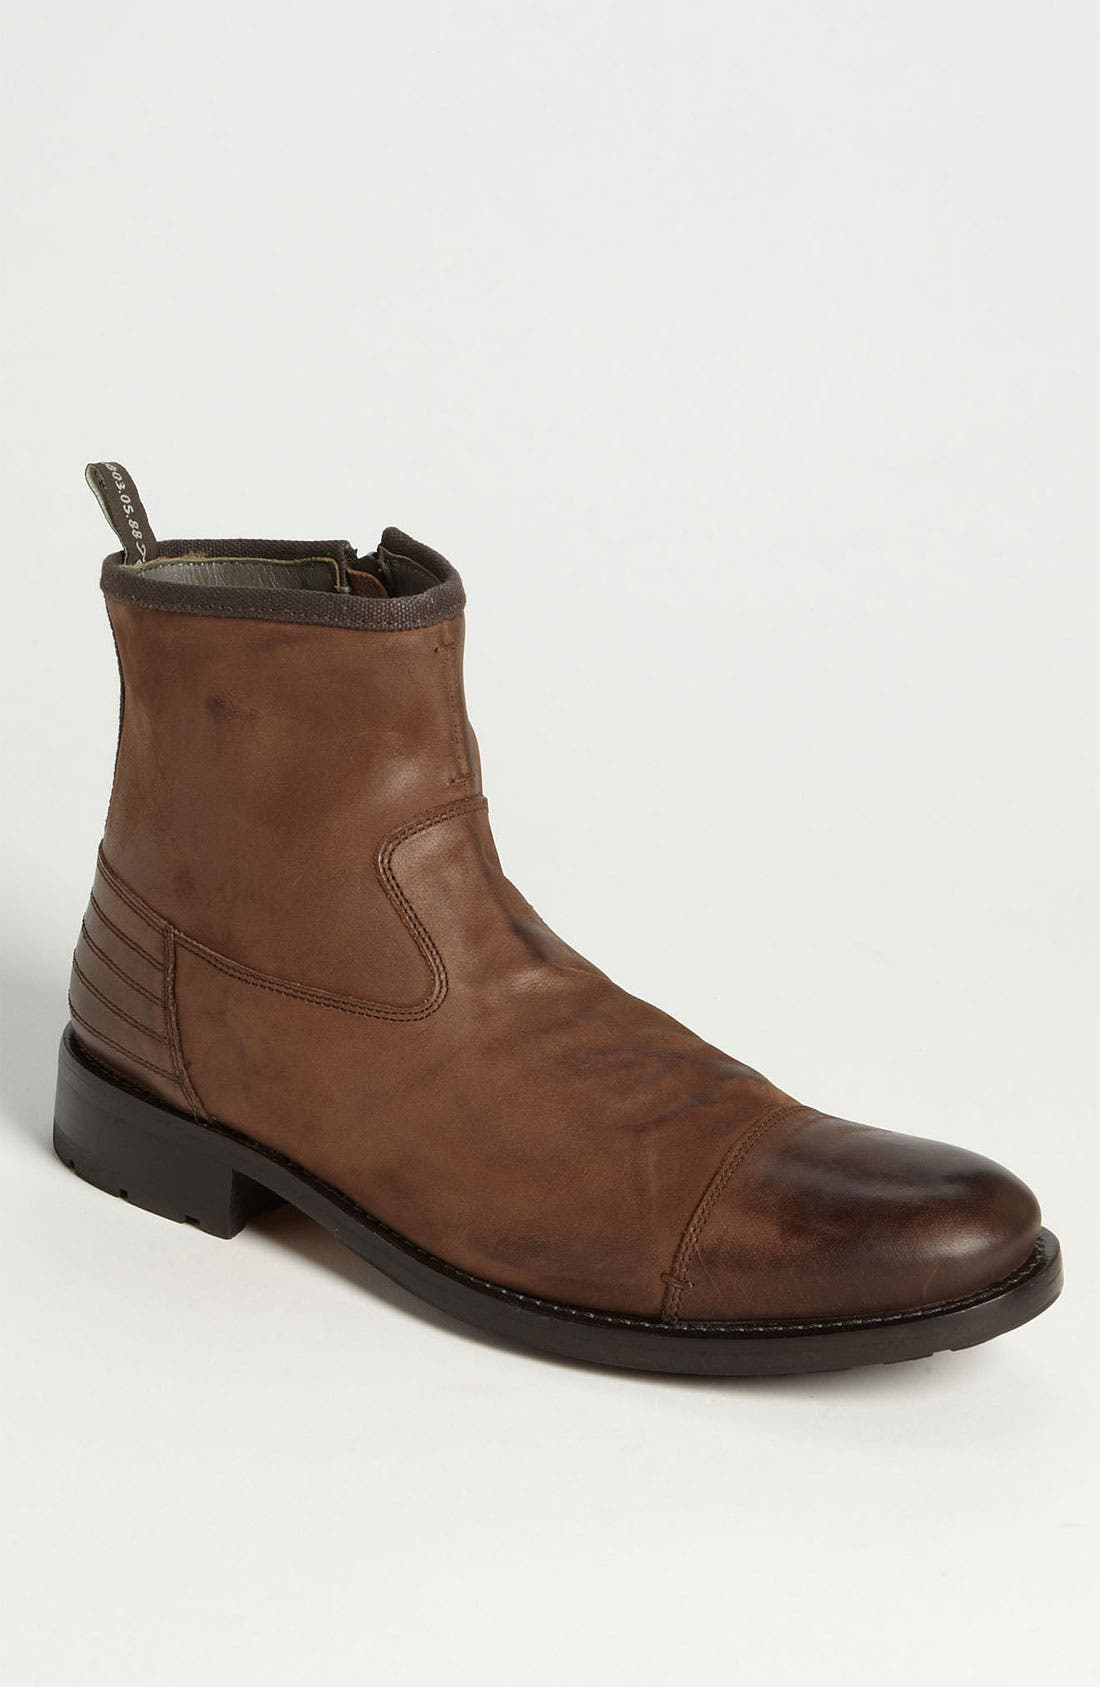 Alternate Image 1 Selected - Ted Baker London 'Abanet' Boot